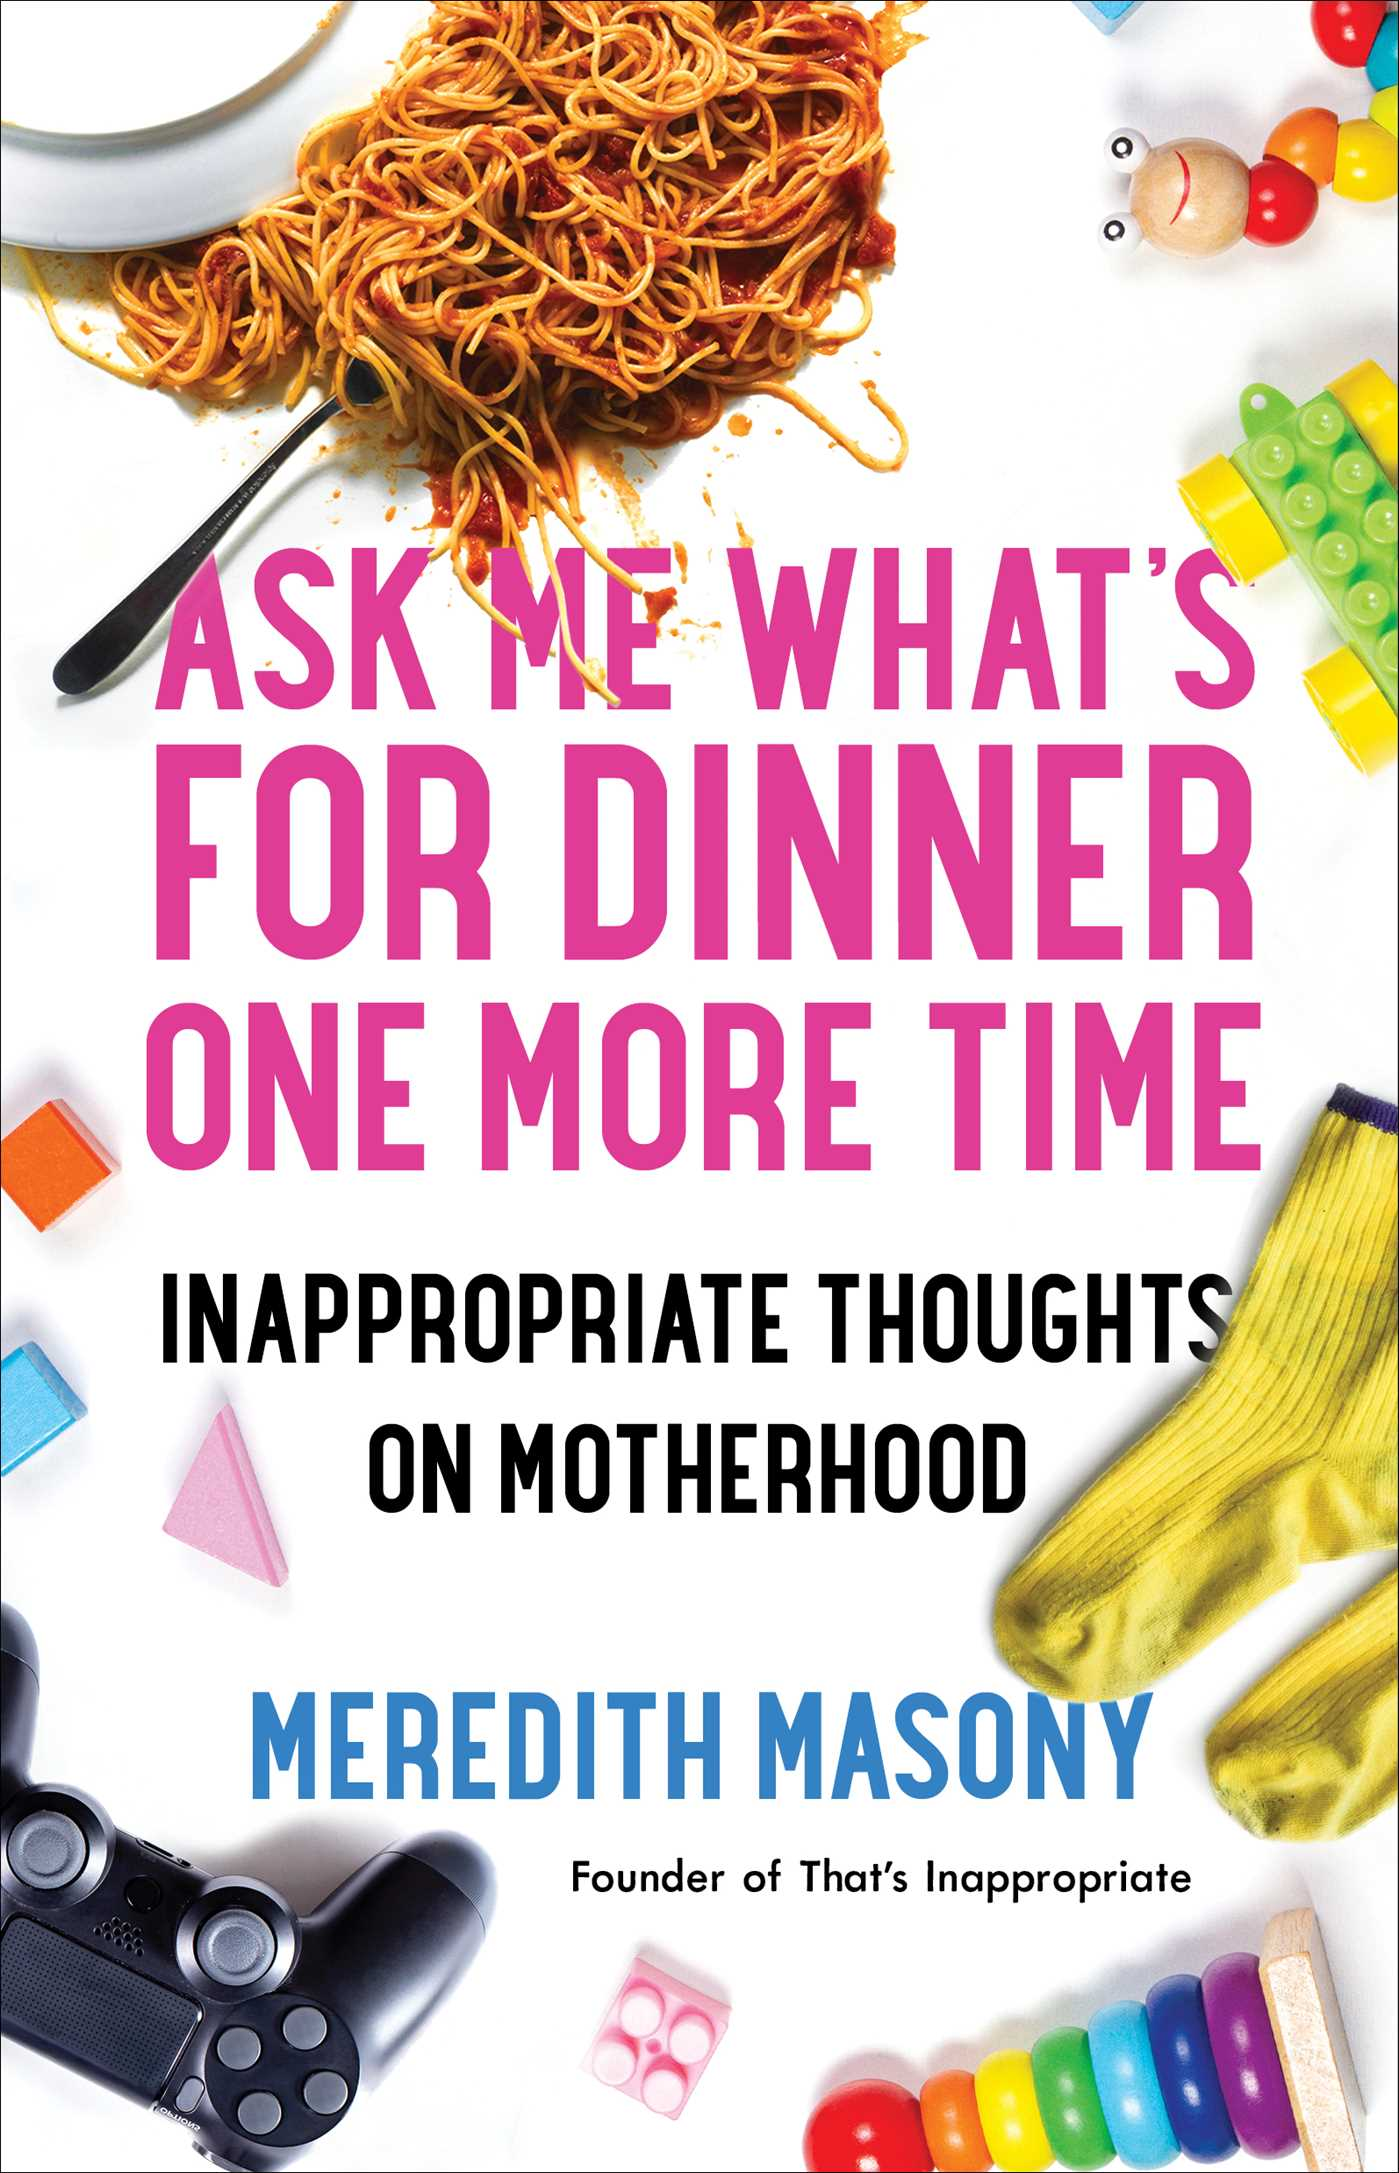 Ask Me What's for Dinner One More Time Inappropriate Thoughts on Motherhood